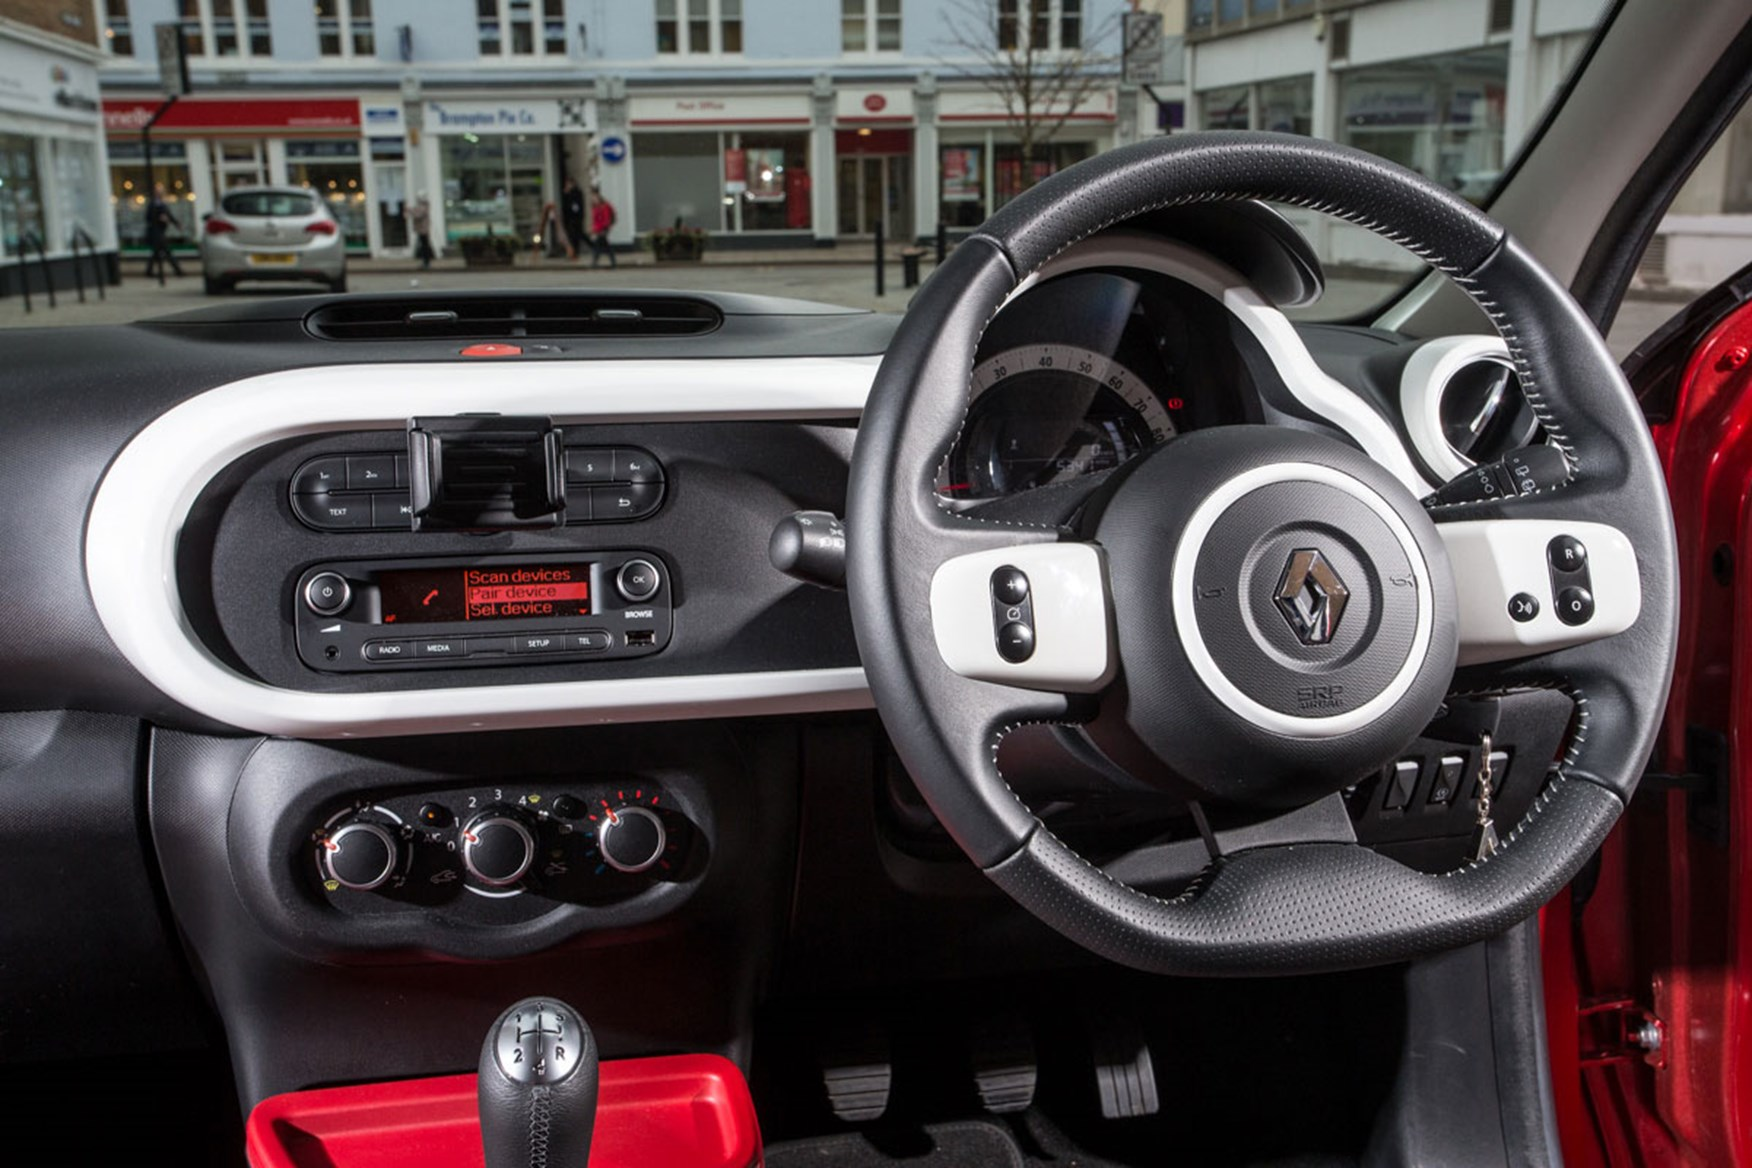 Renault Twingo vs VW Up twin-test review (2015) by CAR Magazine